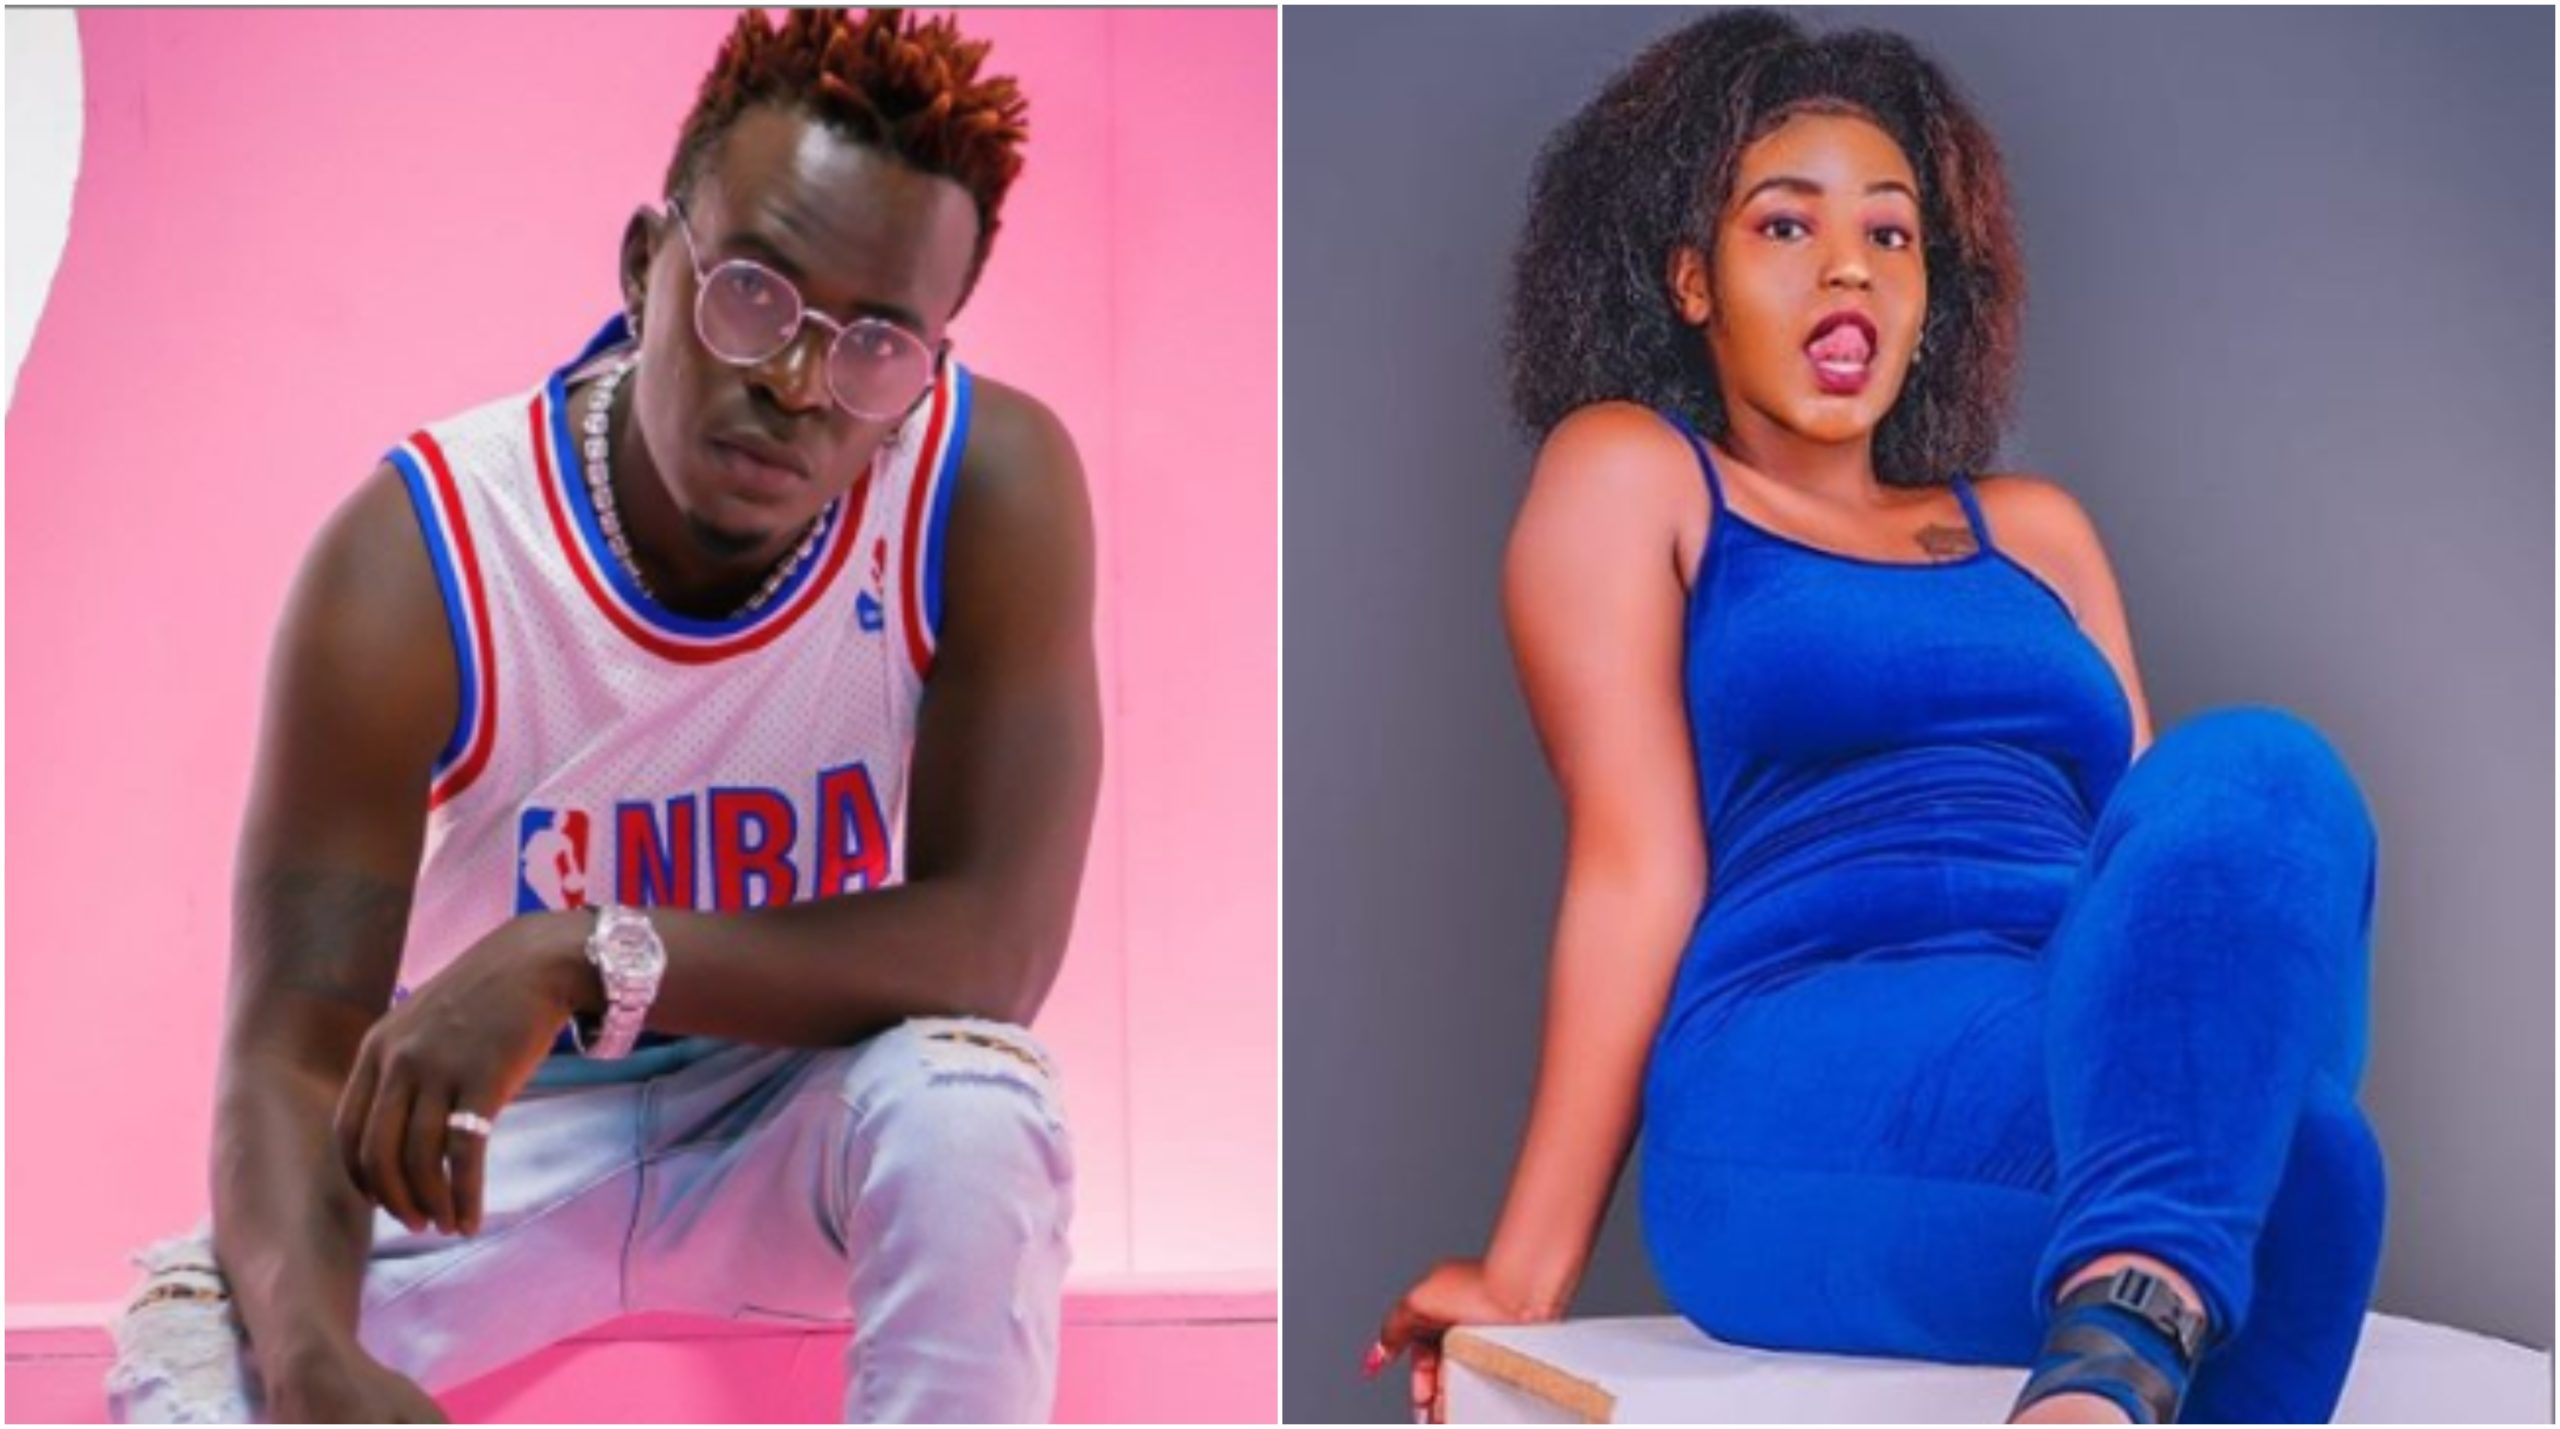 Shakilla vs Willy Paul: Play stupid games, win stupid prizes